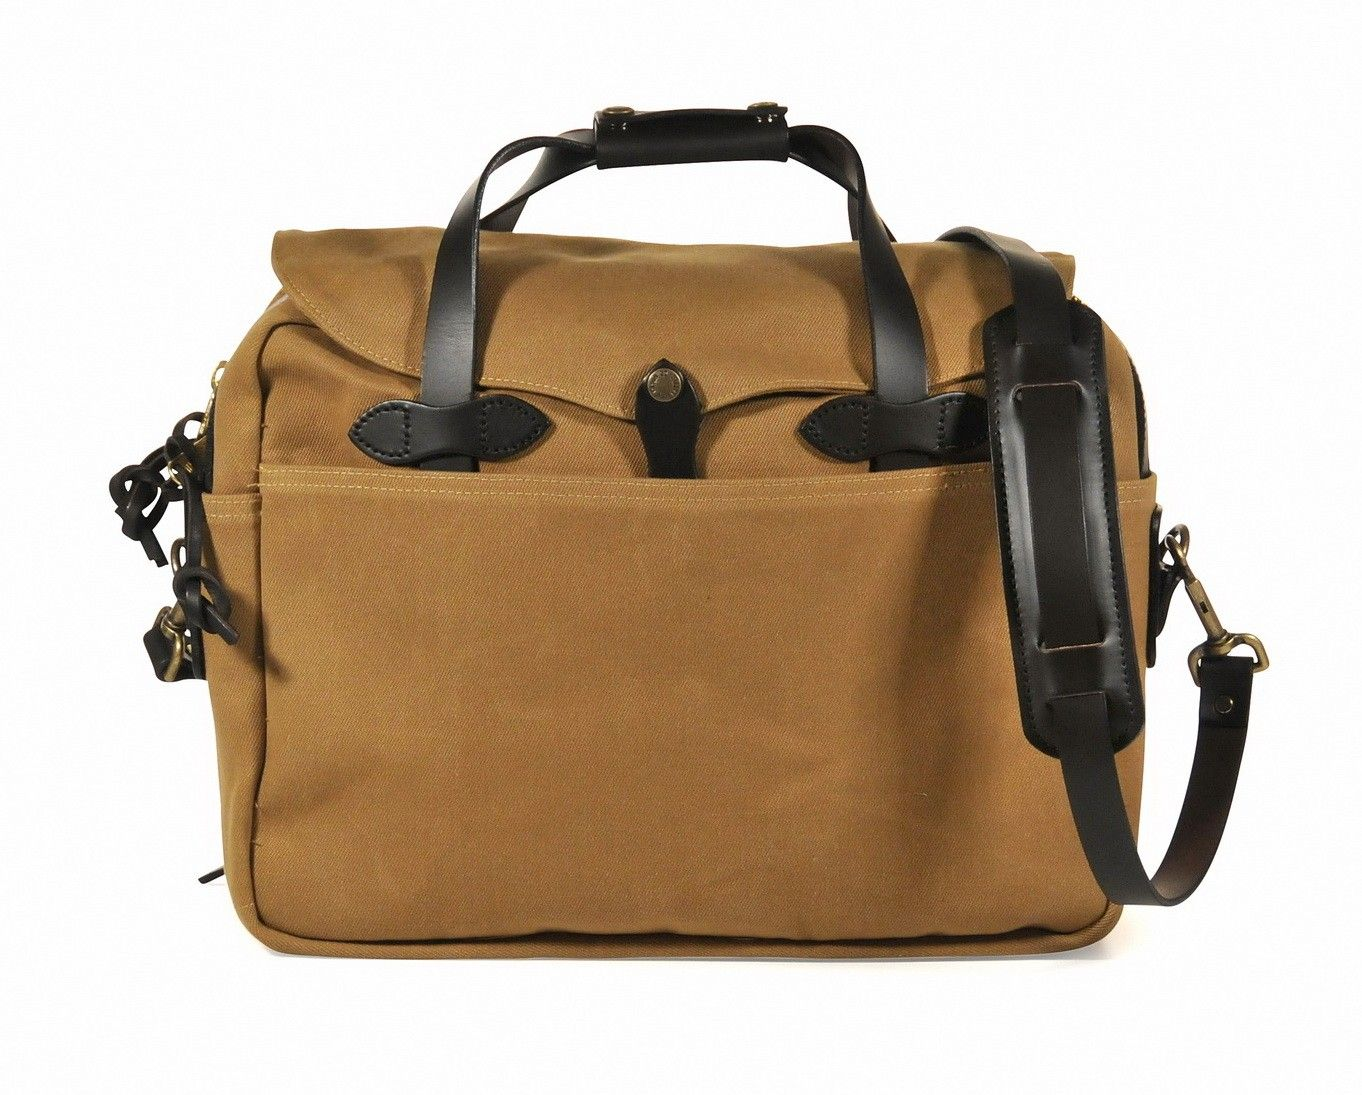 FILSON - Briefcase Computer Case - Tan